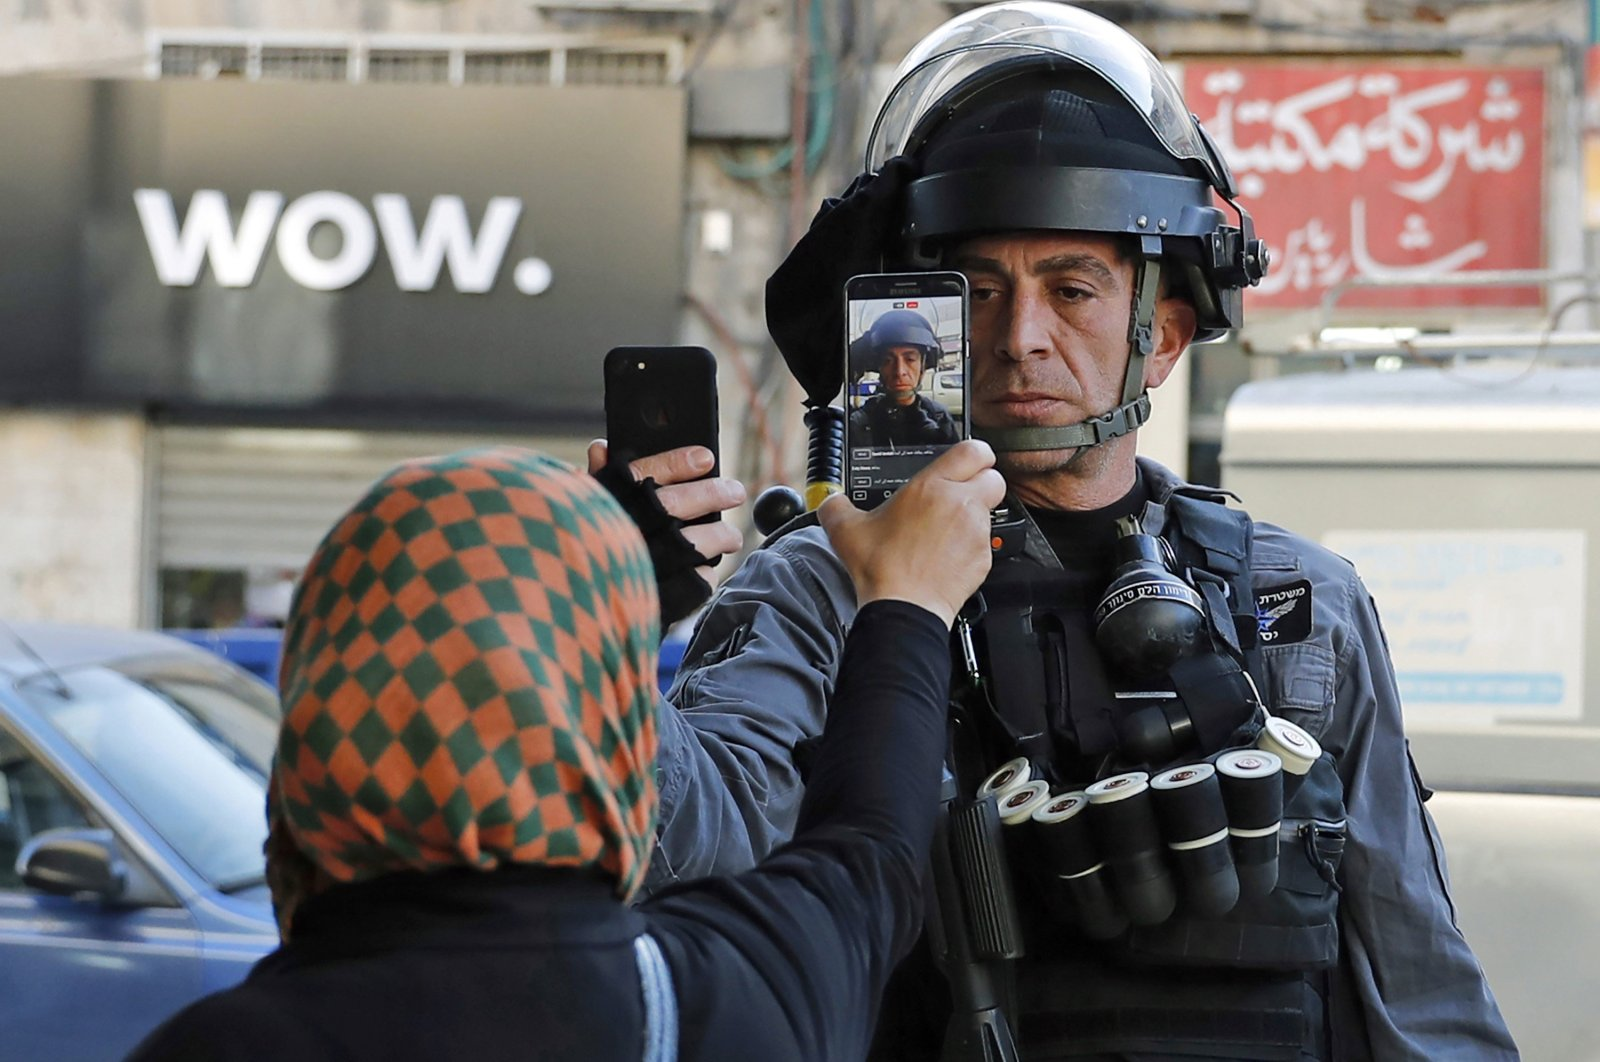 A Palestinian woman takes a picture of a member of the Israeli security forces as he takes her picture in a street in Jerusalem, Dec.16, 2017.